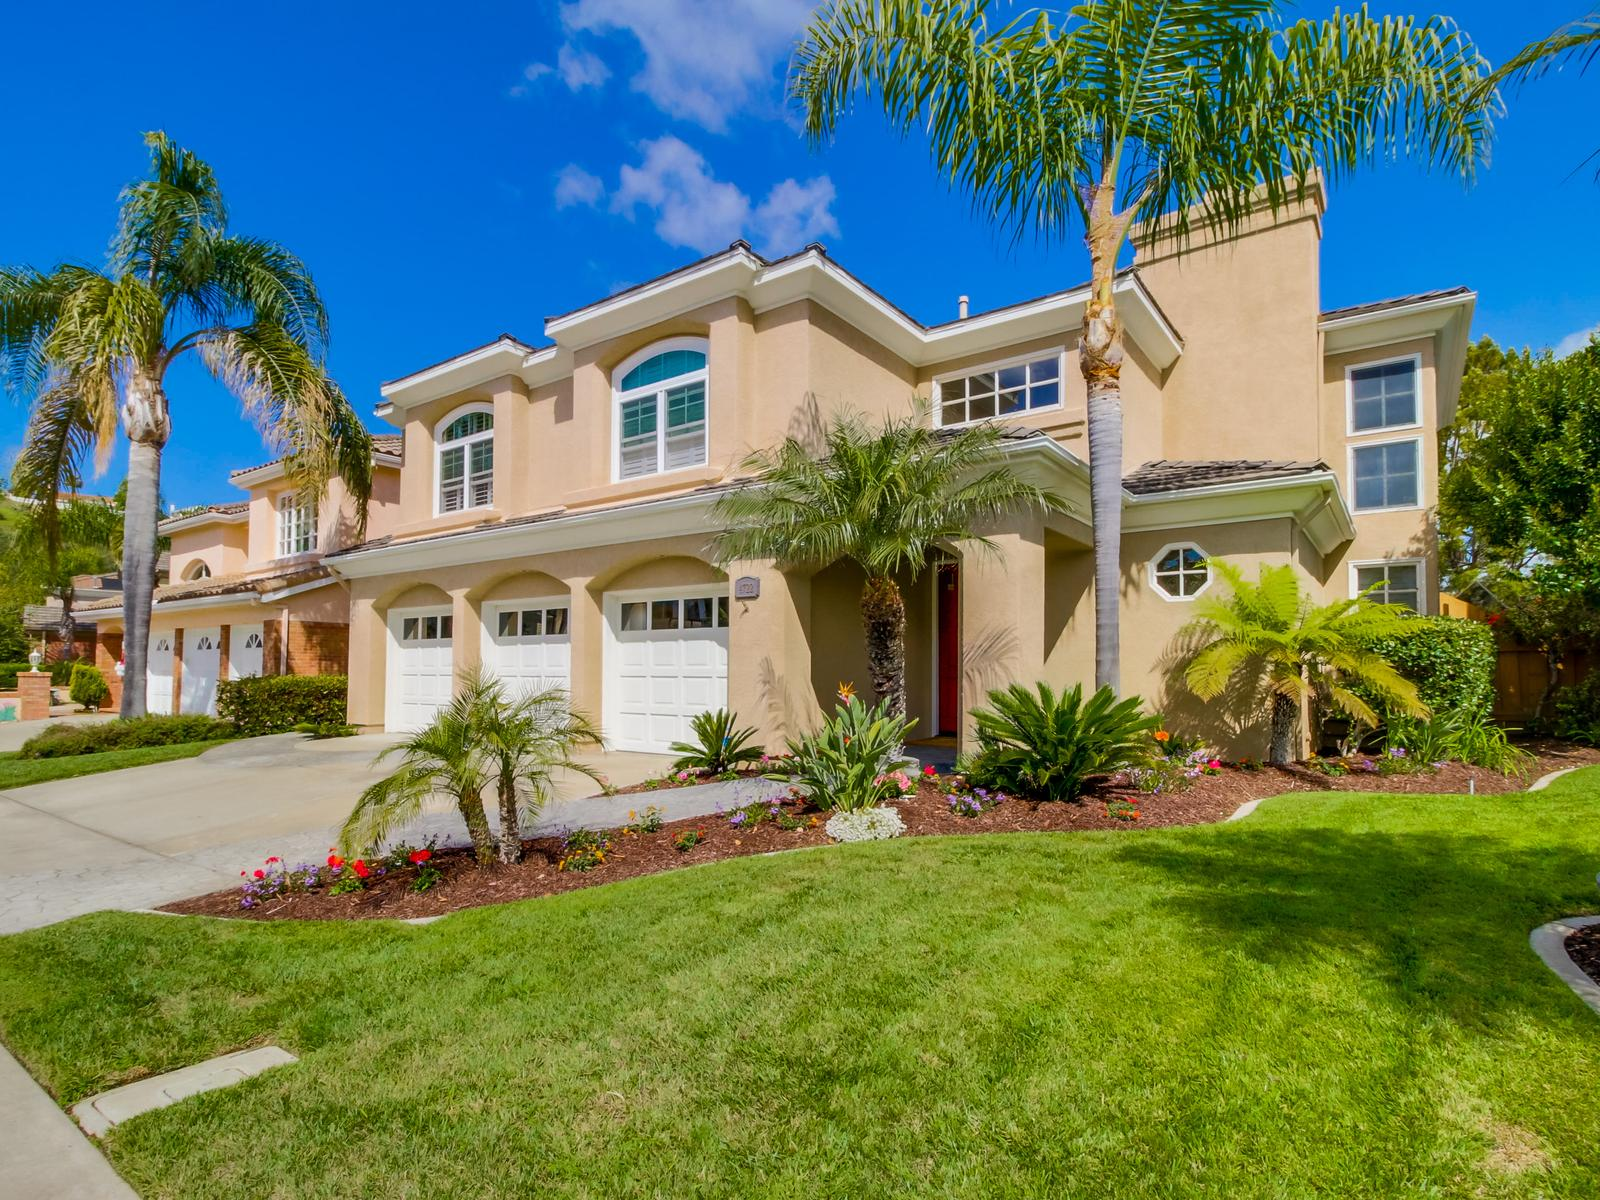 Single Family Home for Sale at 4722 Shadwell San Diego, California, 92130 United States